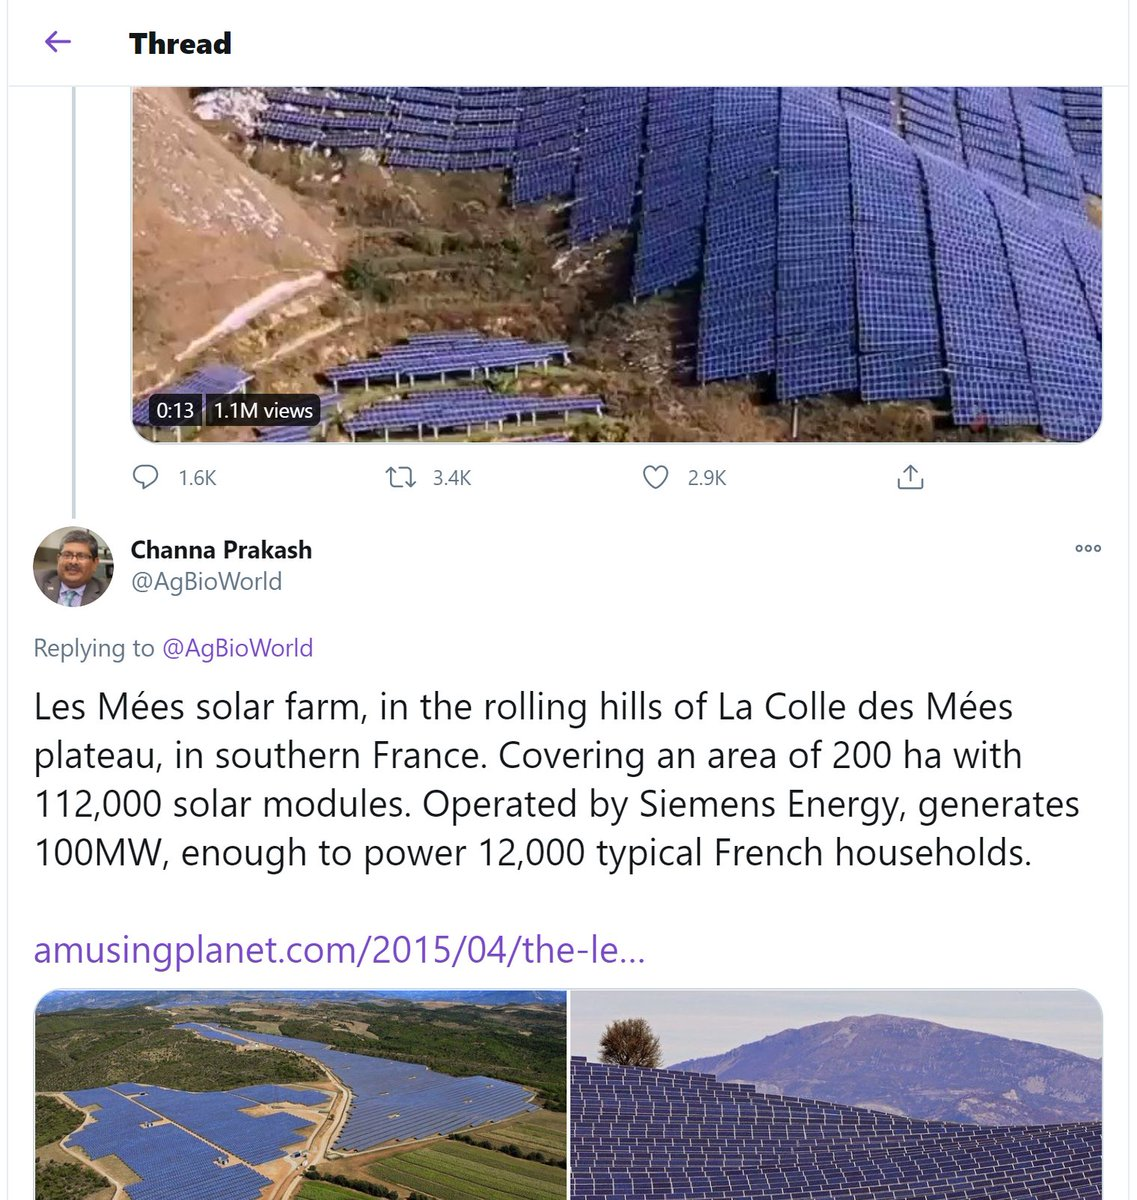 Appendix B: old mate AgBioWorld claims the Imgur video is Les Mees, but a friend has pointed out the video might actually be a very similar but less-nice-looking one? Obviously all the points still stand, but it's unclear which solar project this actually is.